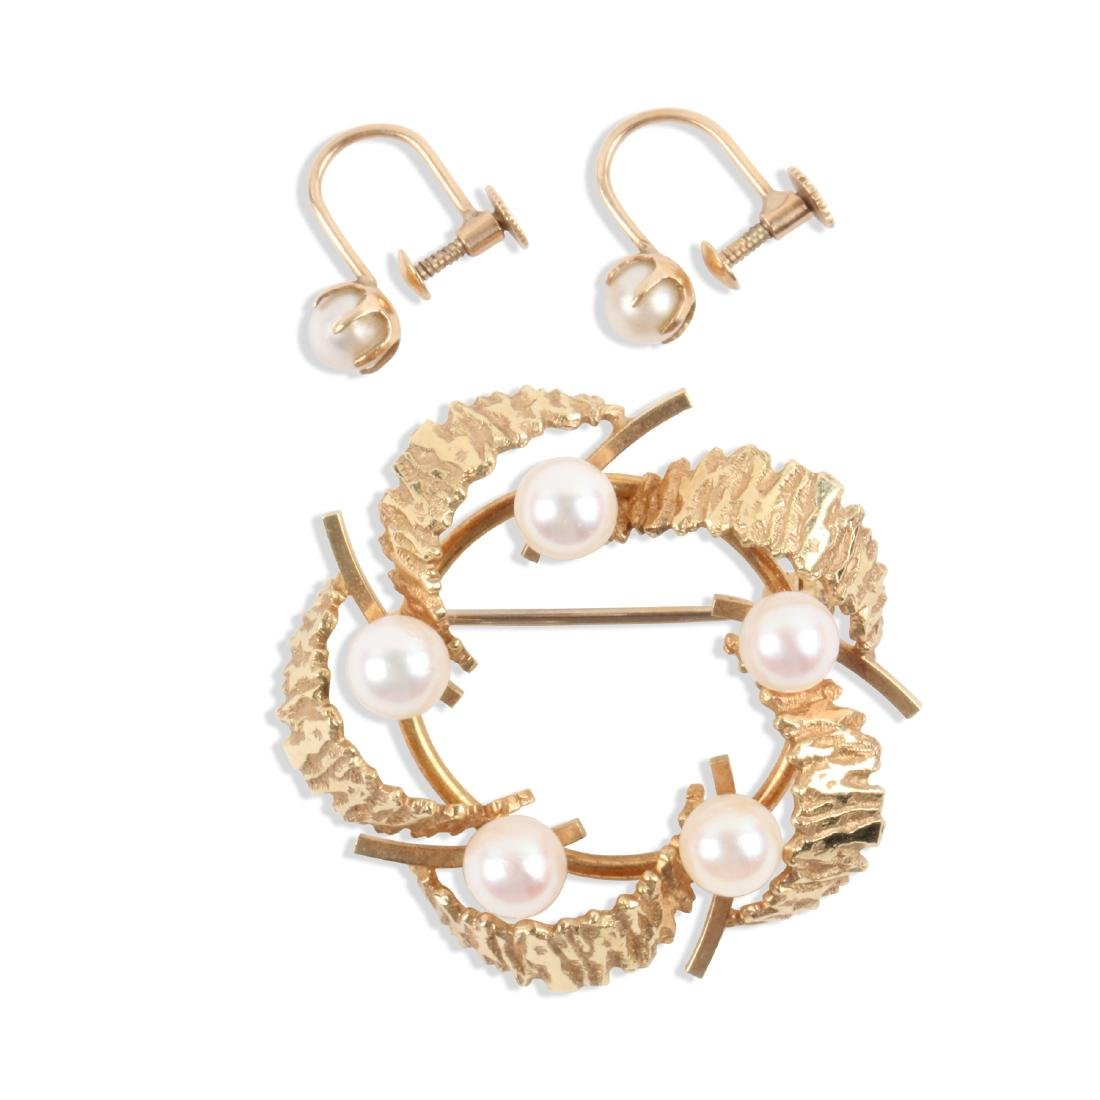 An 18K Gold & Pearl Earrings, Brooch Set